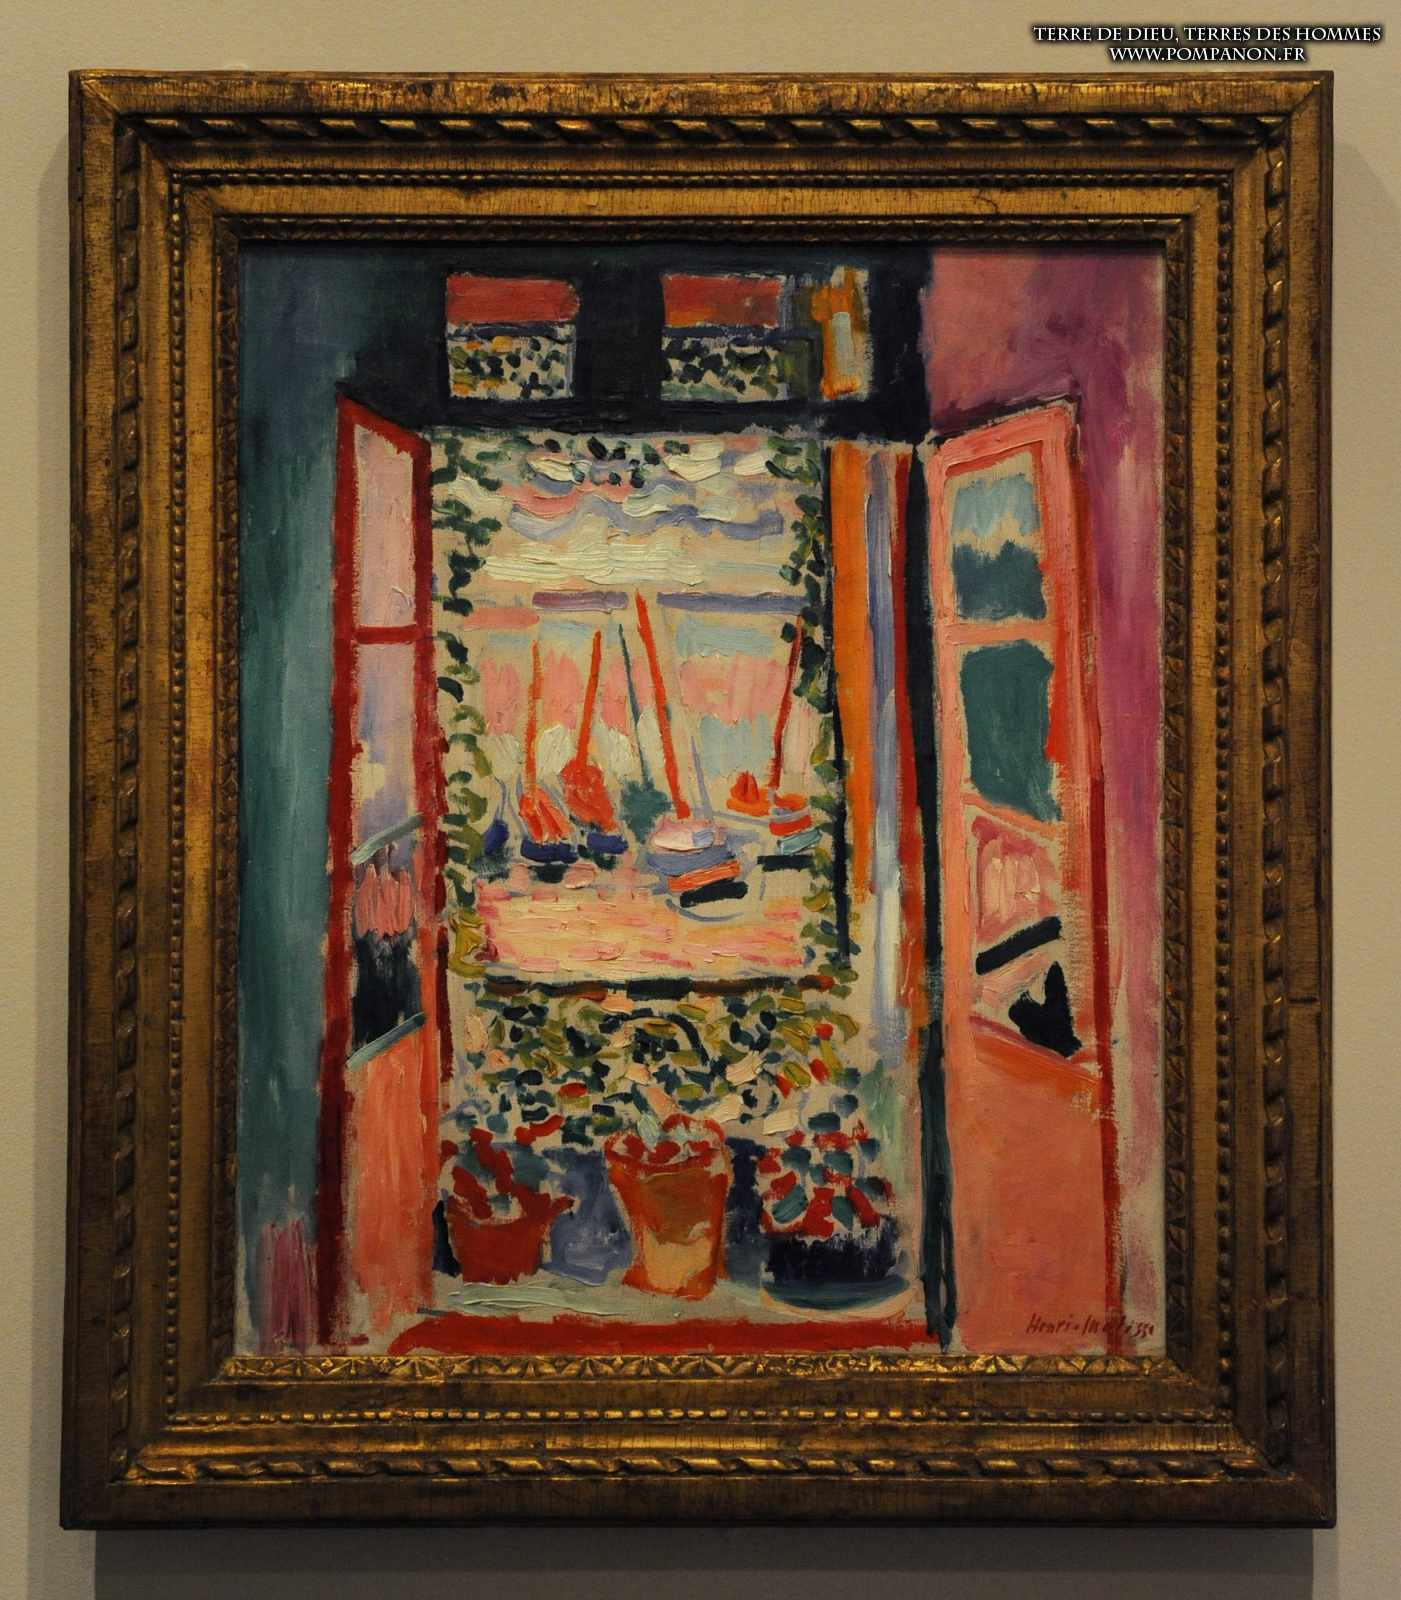 National gallery of art for Matisse fenetre ouverte collioure